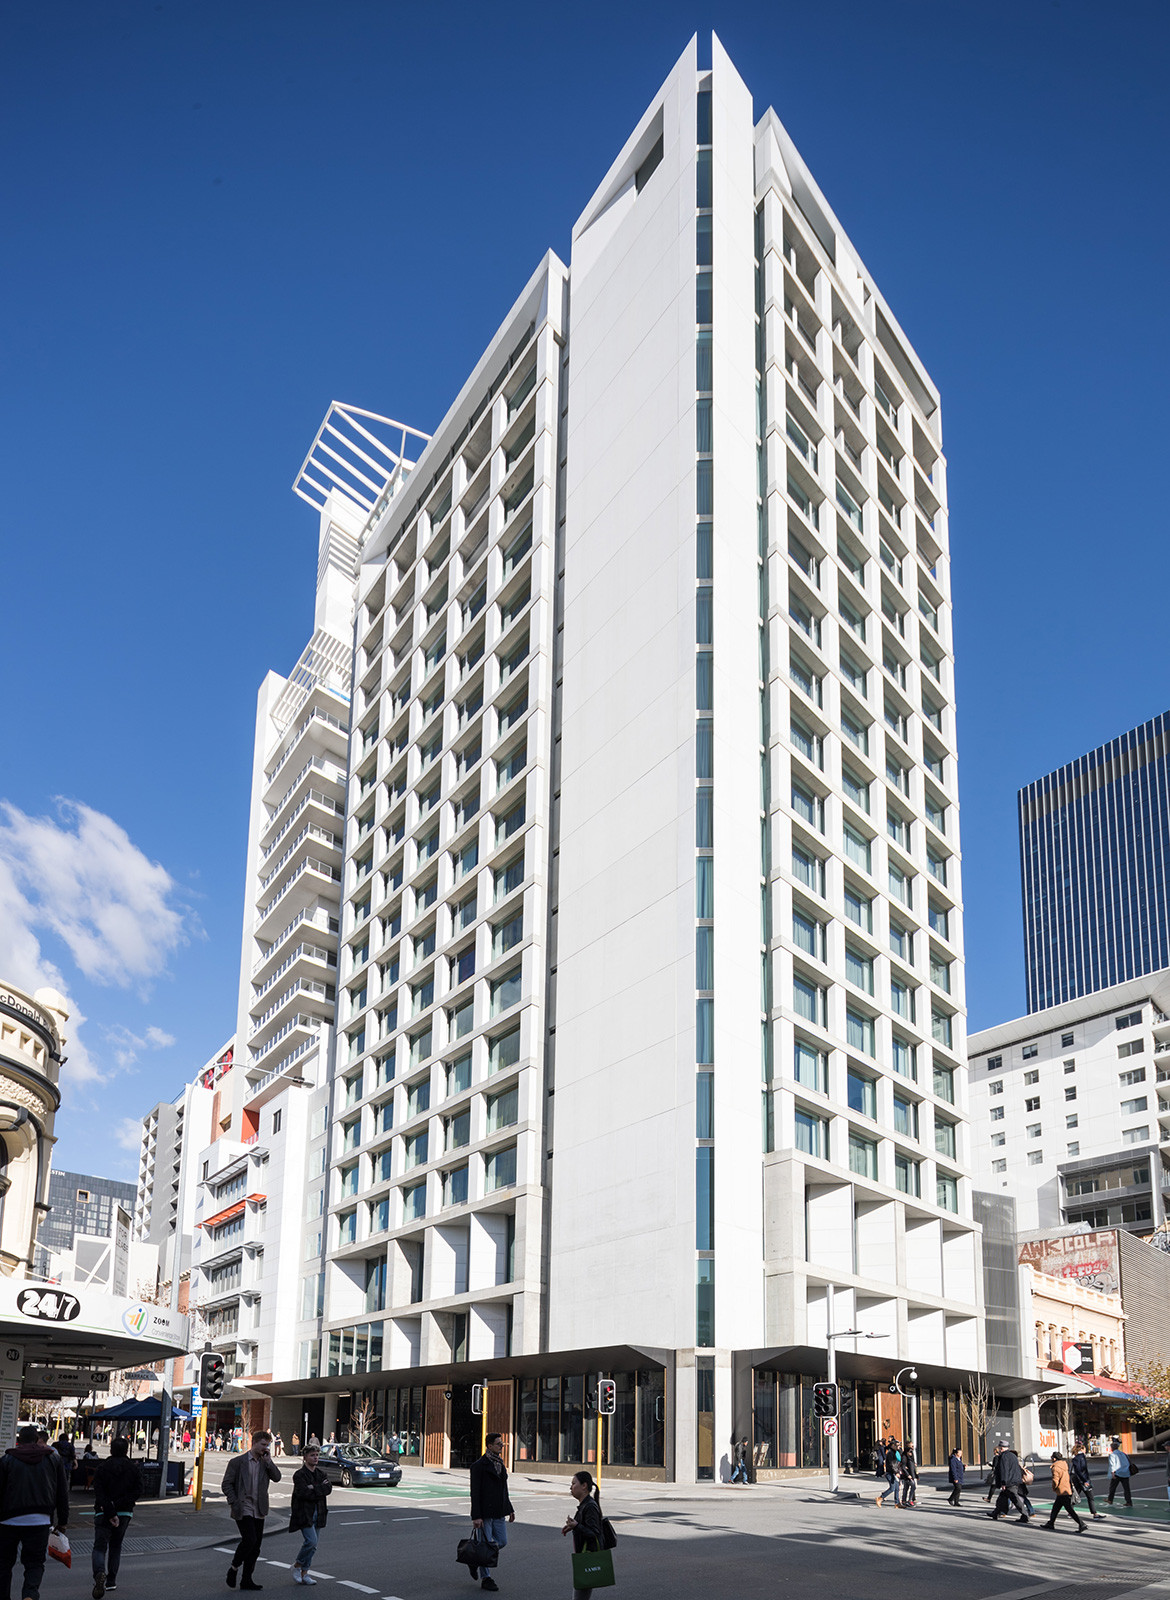 QT Hotel Perth Indyk Architecture hotel exterior shot